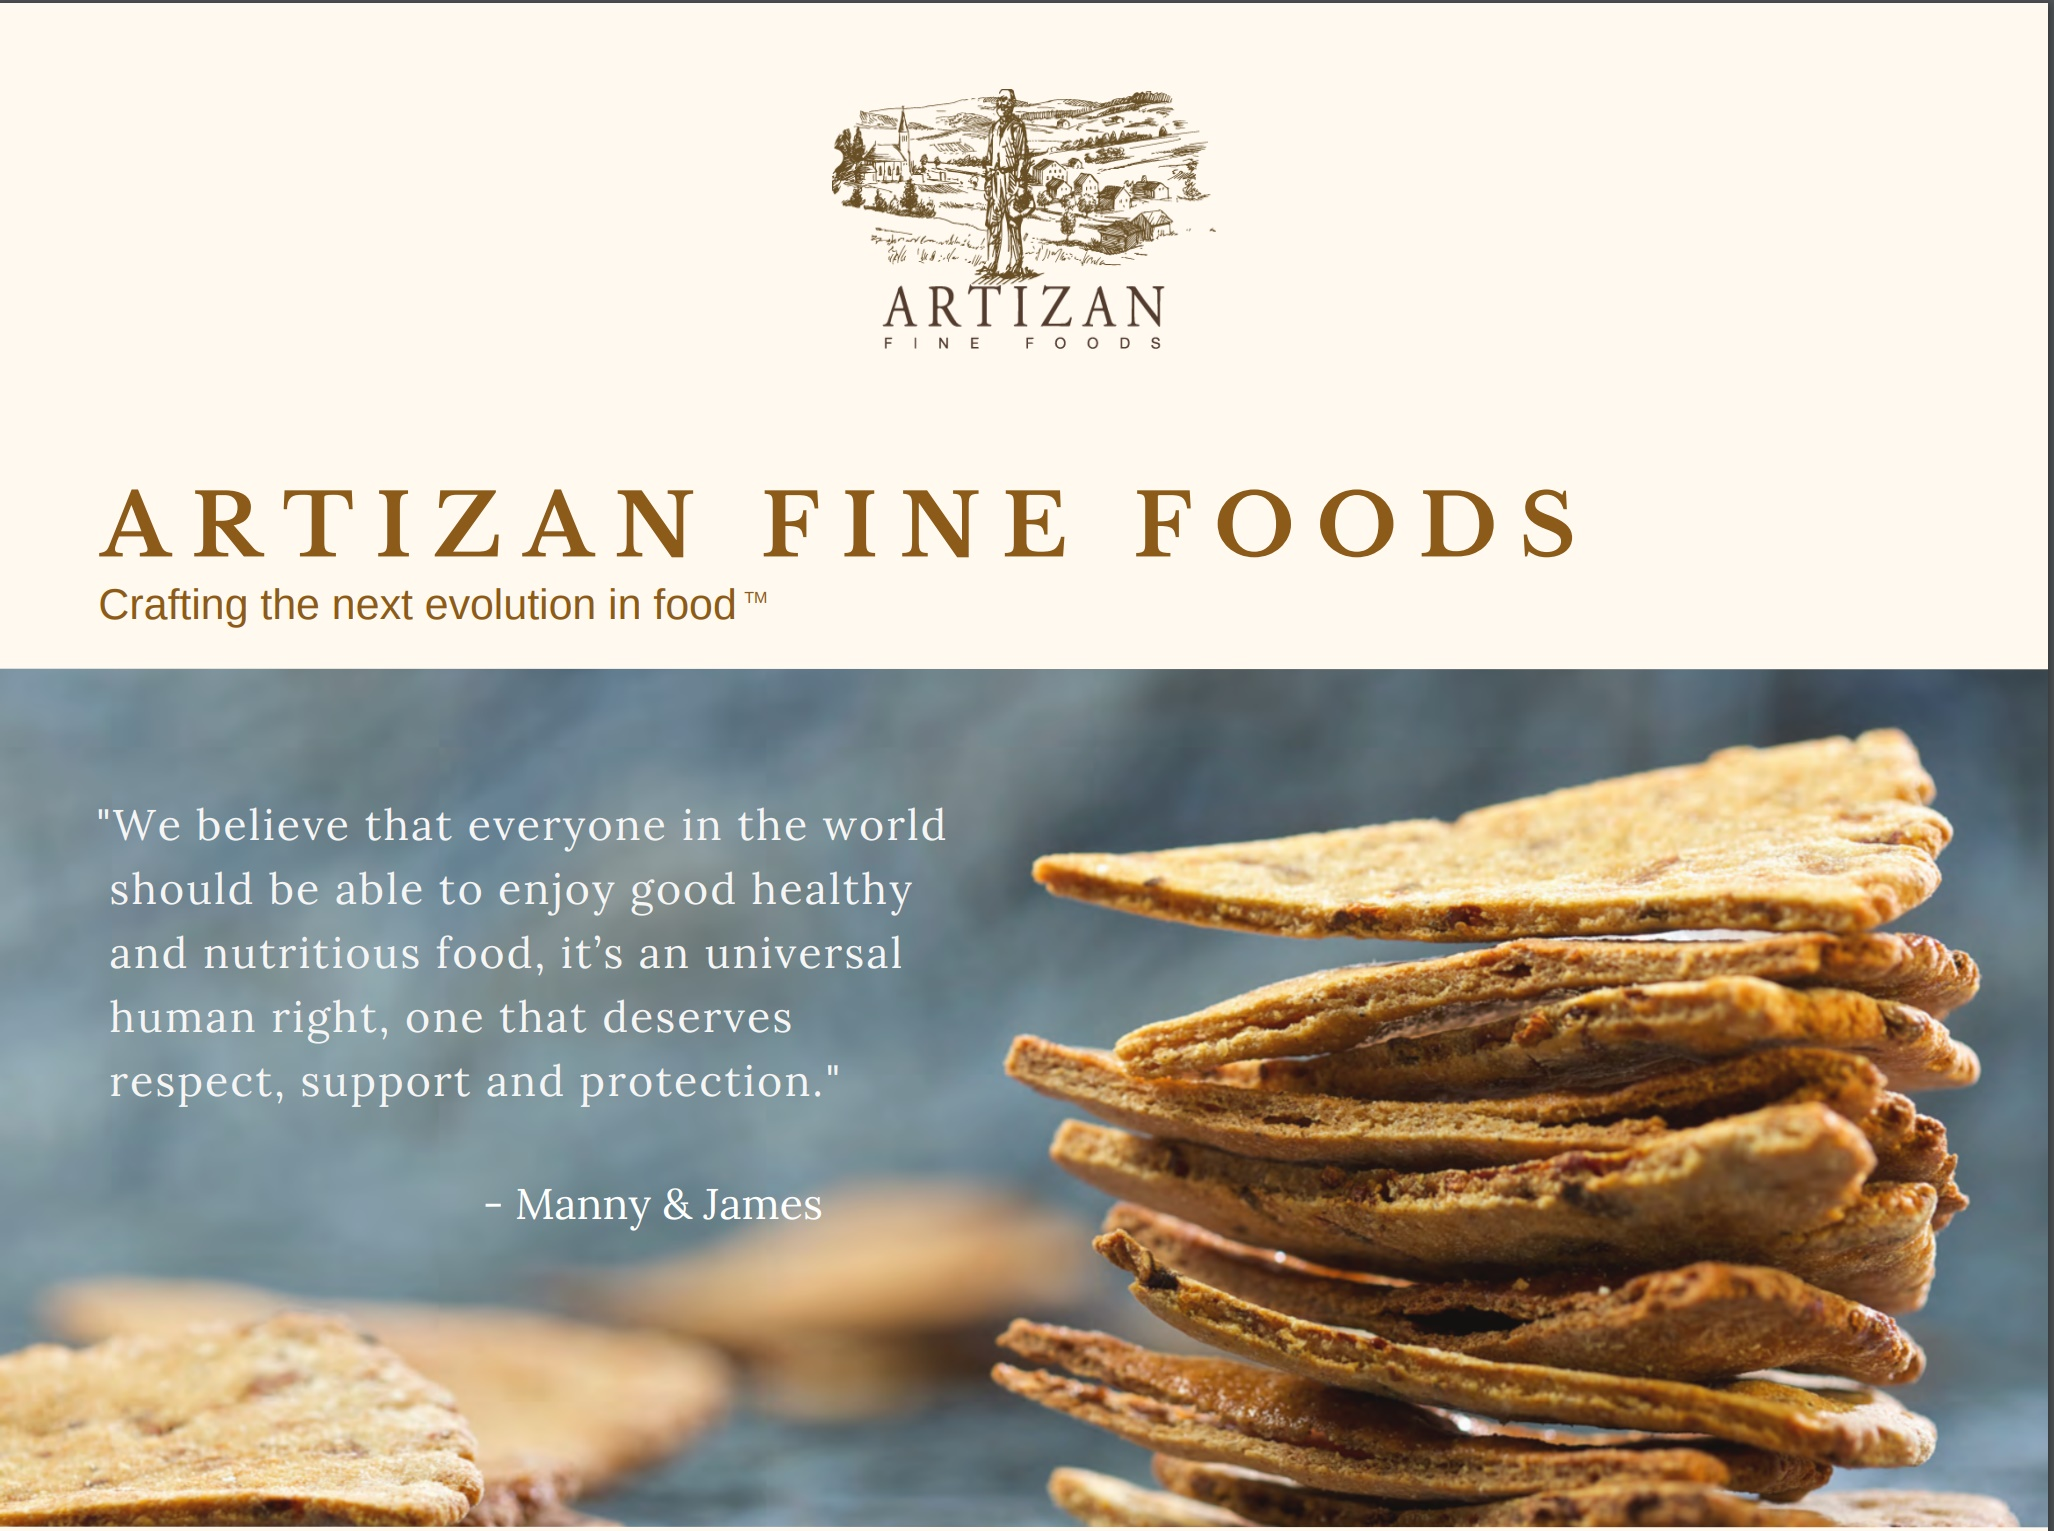 Artizan Fine Foods Pitch Deck Cover